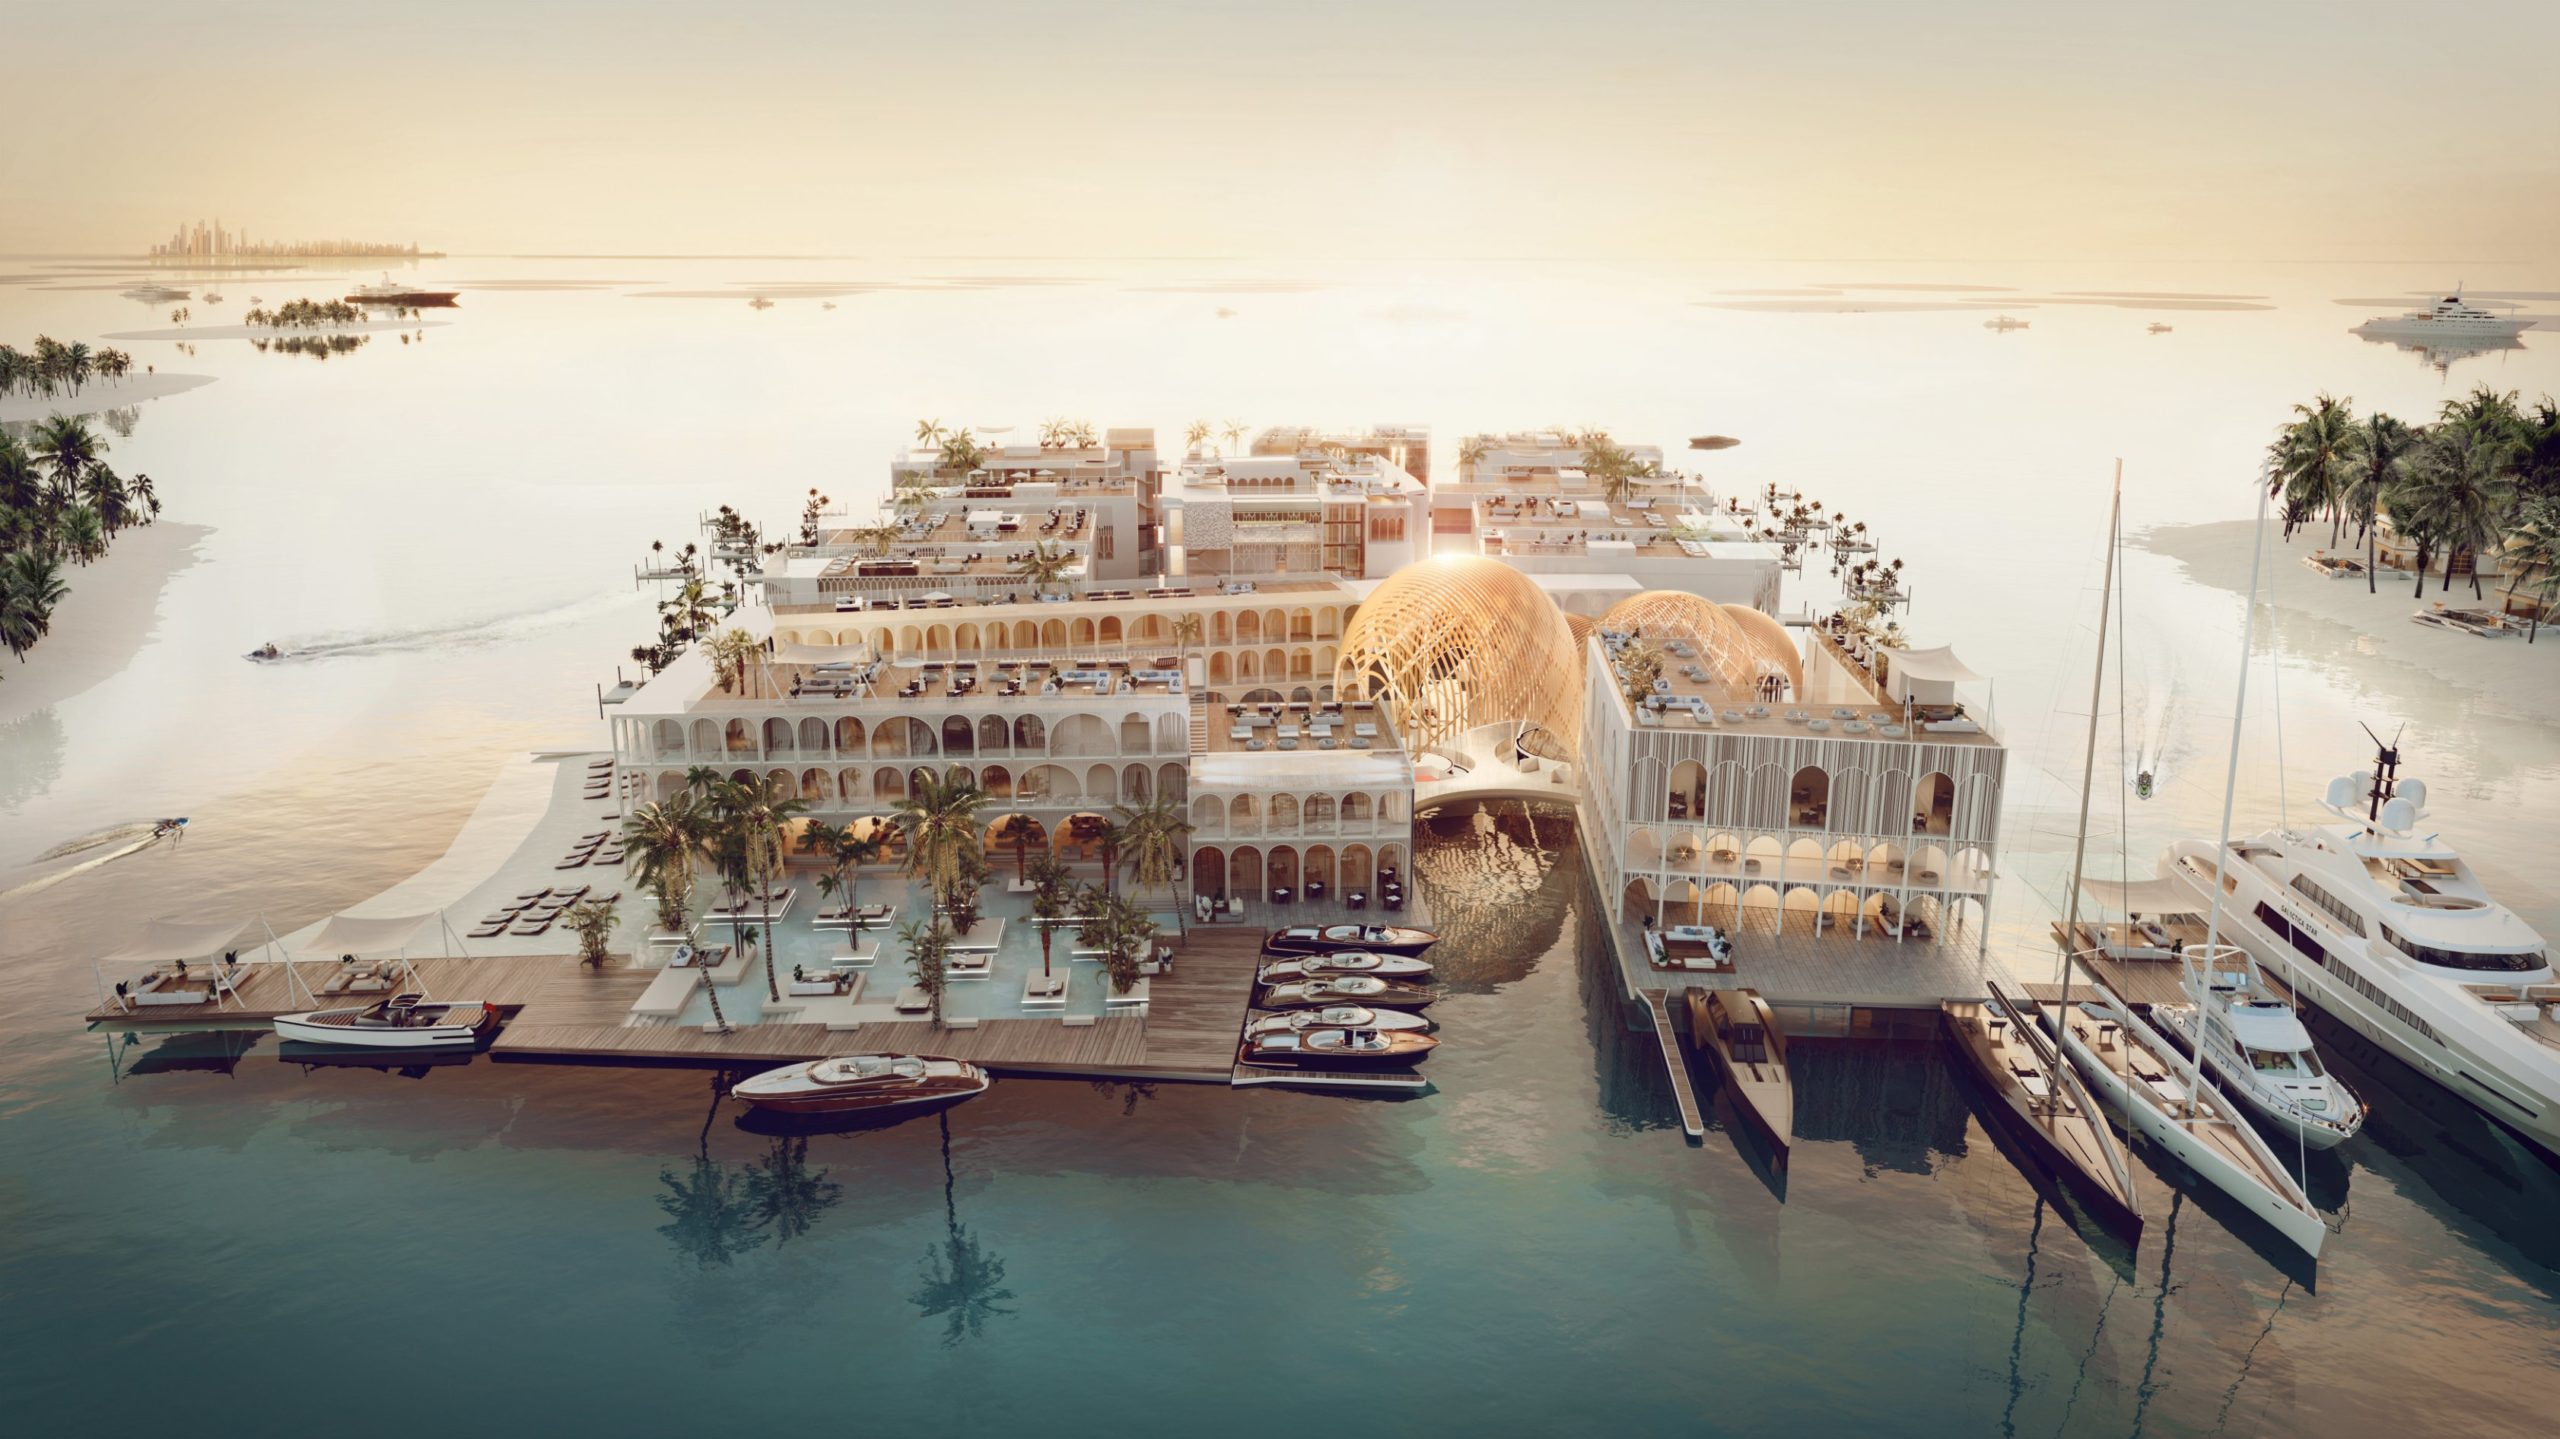 The Floating Venice